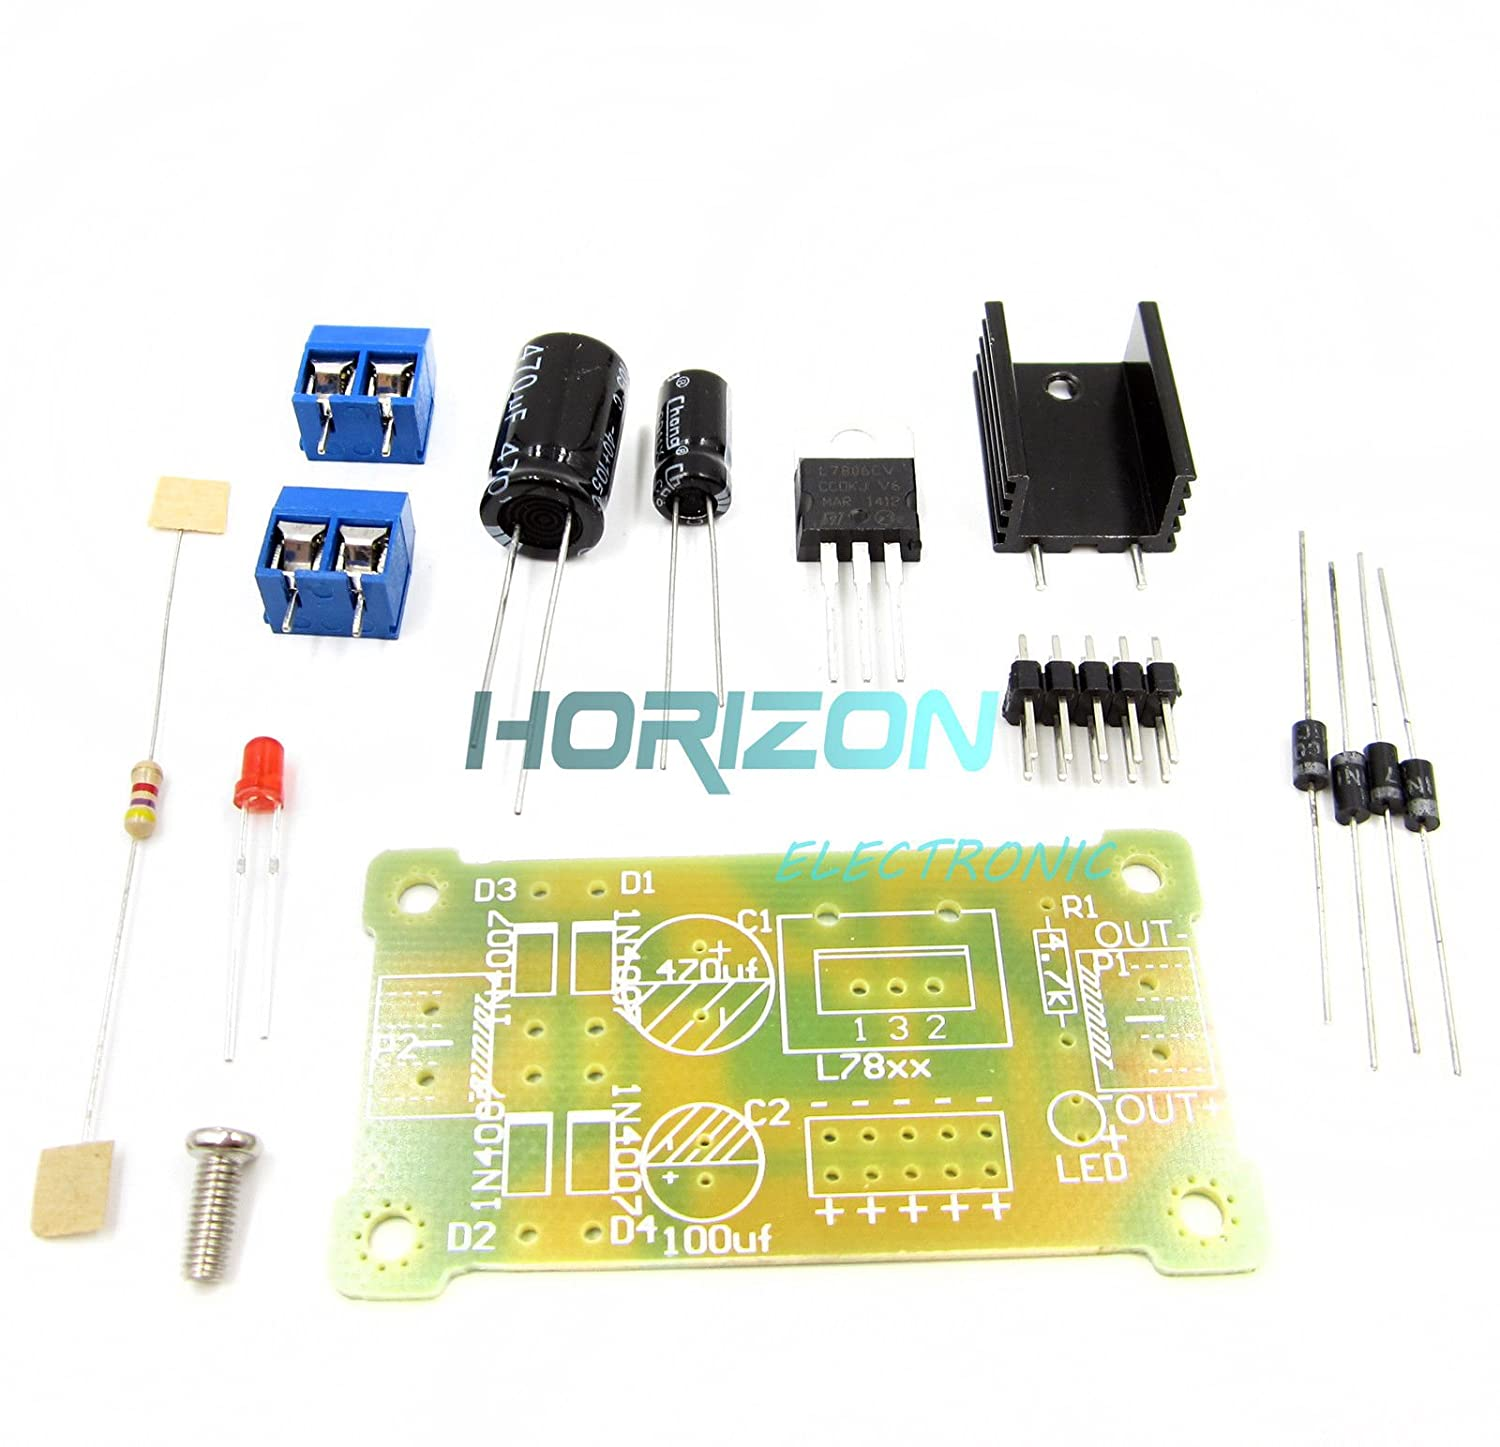 LM7815 Step Down 19V-35V to 15V Power Supply Module DIY Kit